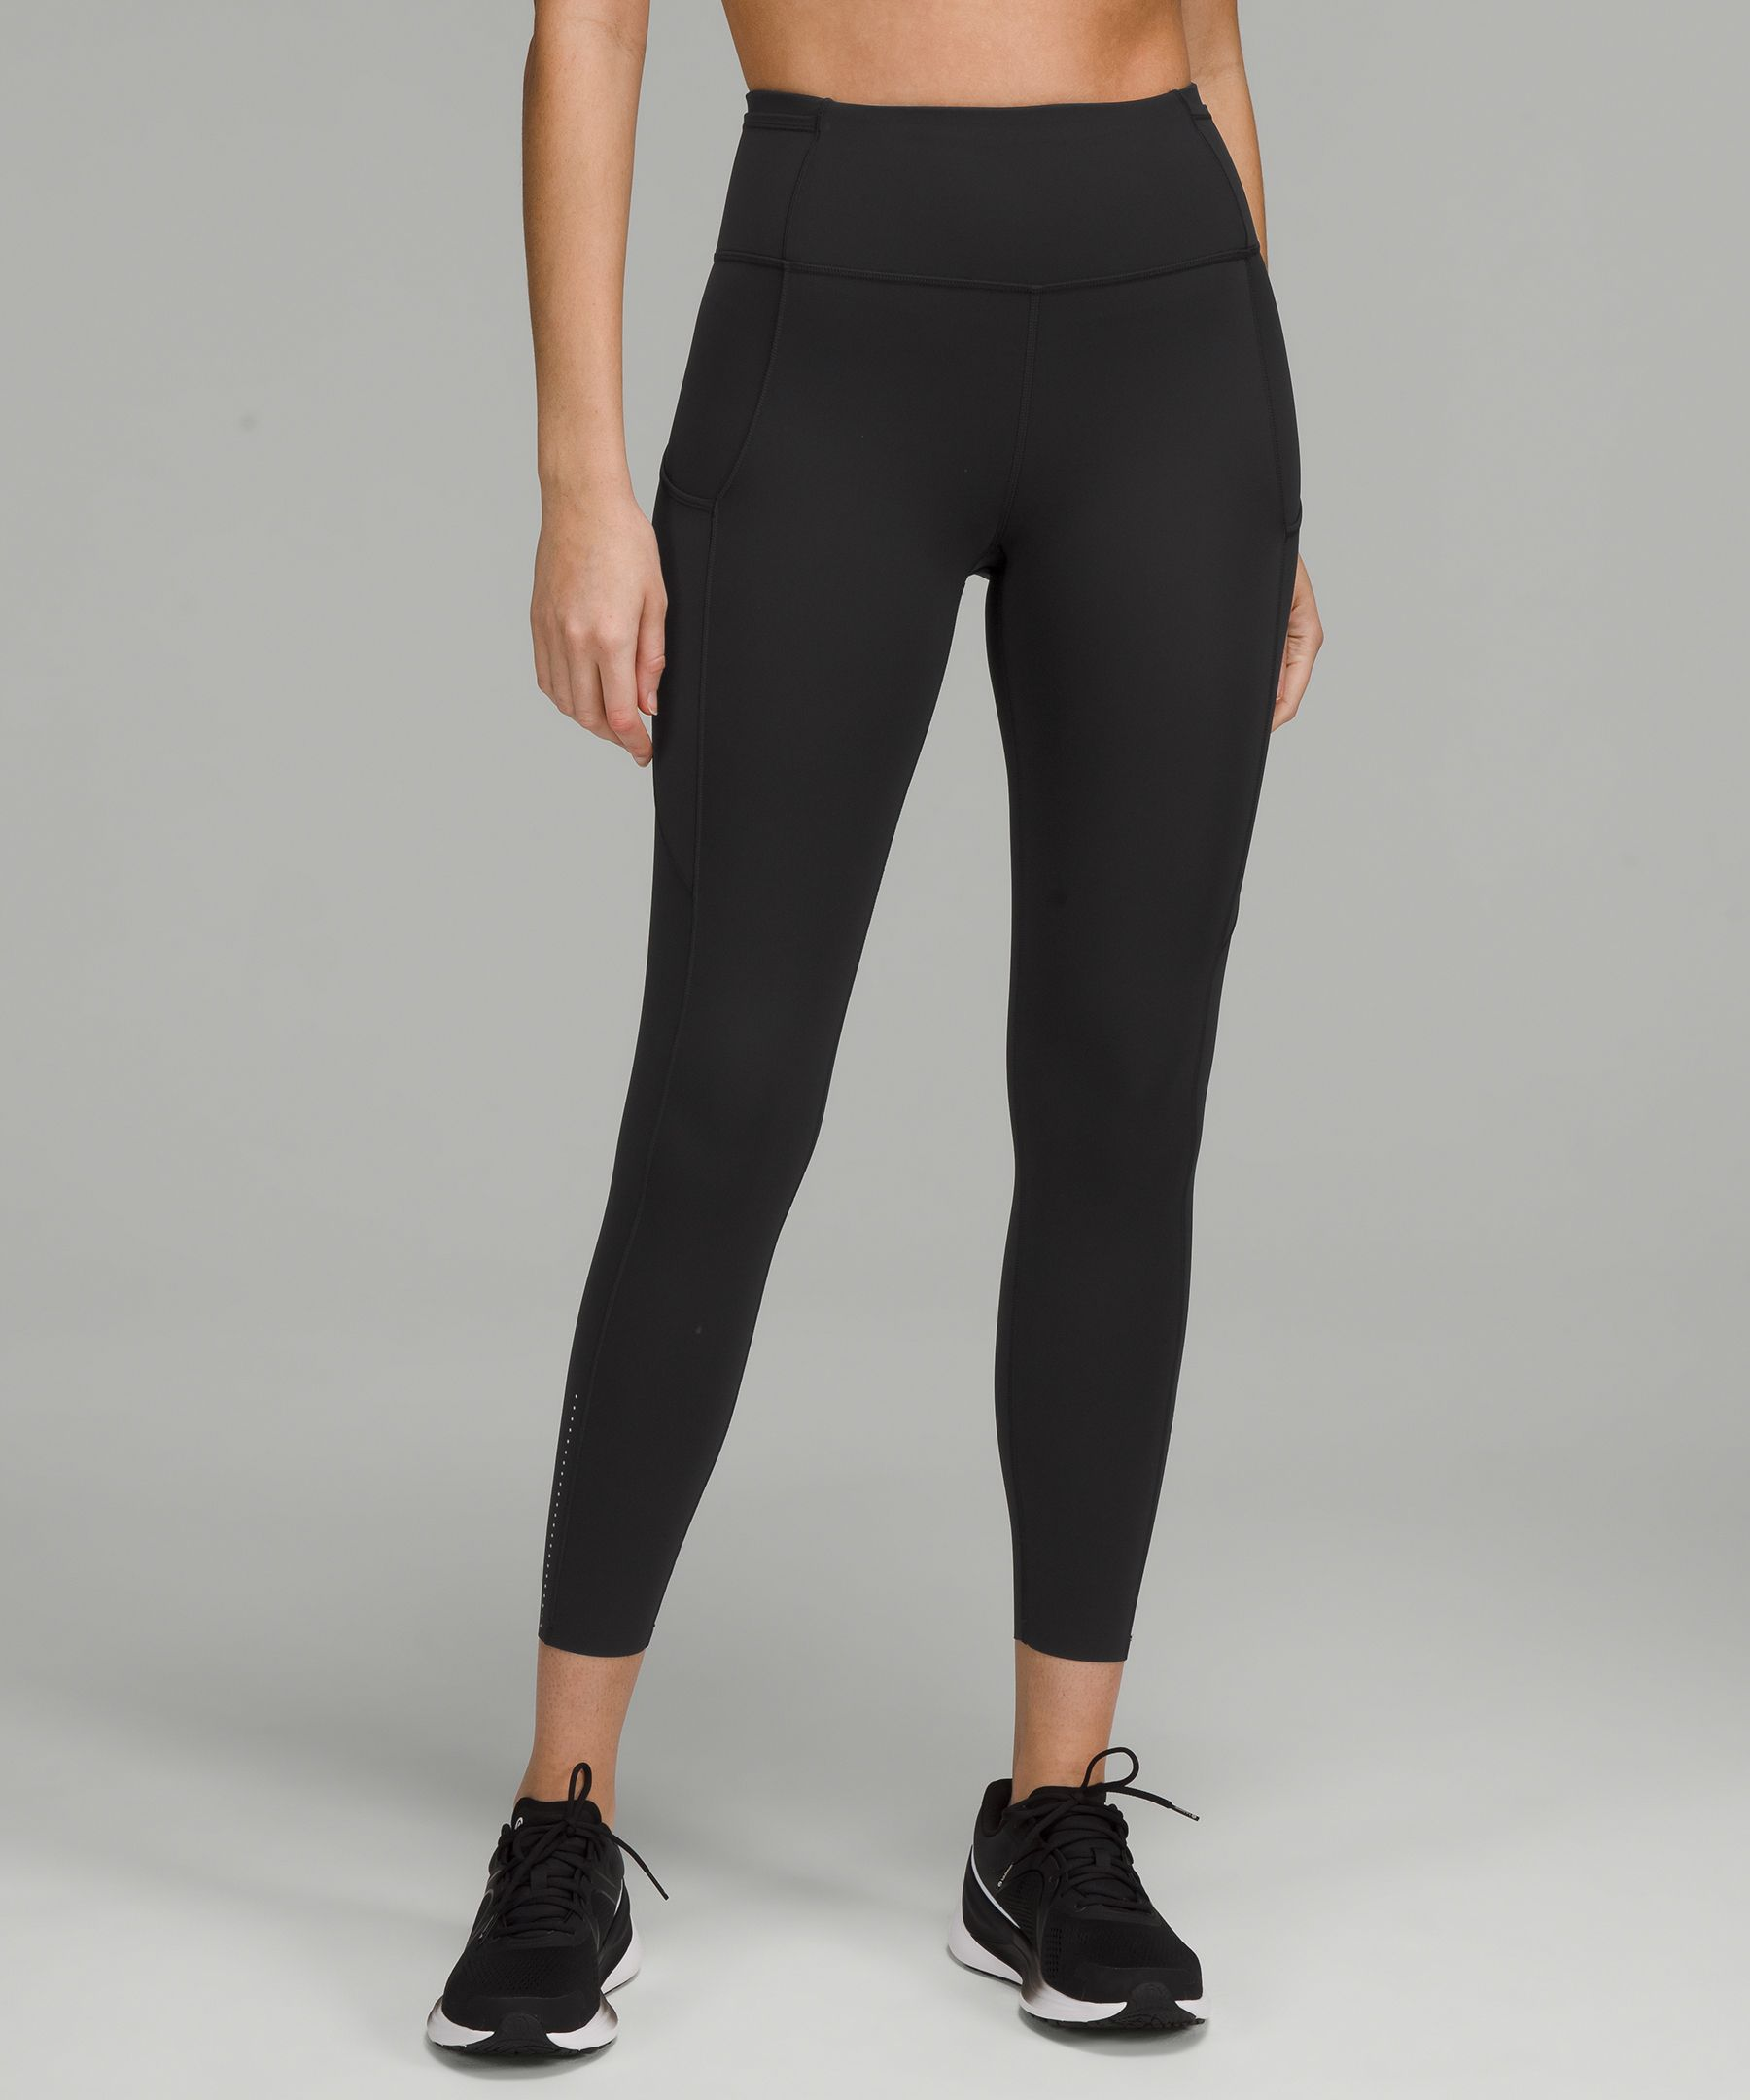 7c1ae0dd4edaeb fast and free 7/8 pant ii | womens 7/8 pants | lululemon athletica